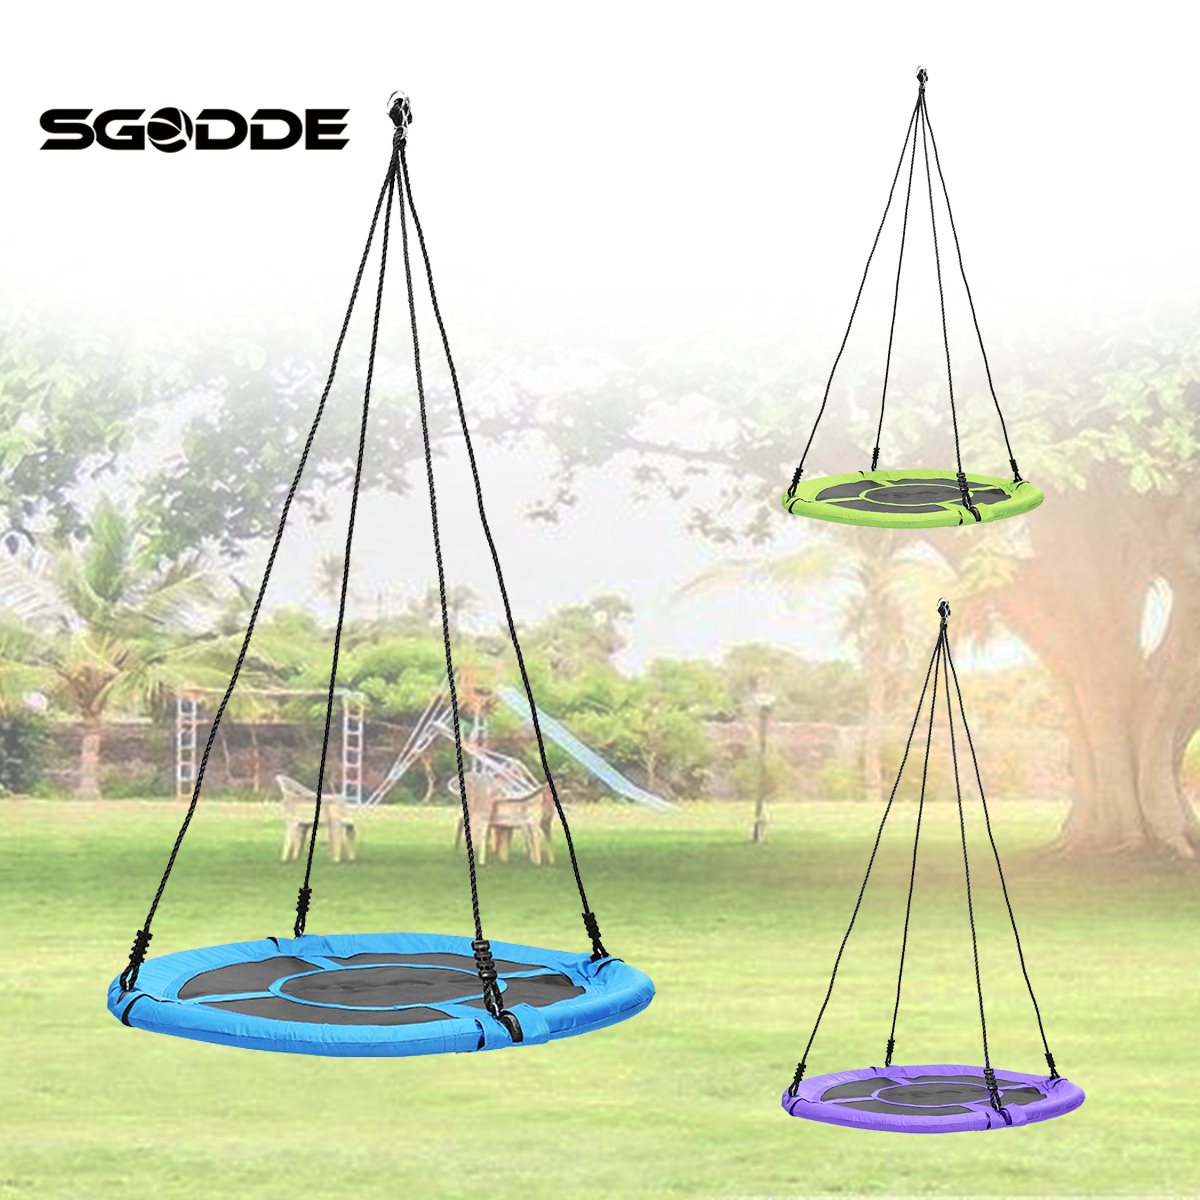 Sgodde Children Kids Round Nest Tree Swing Large Seat